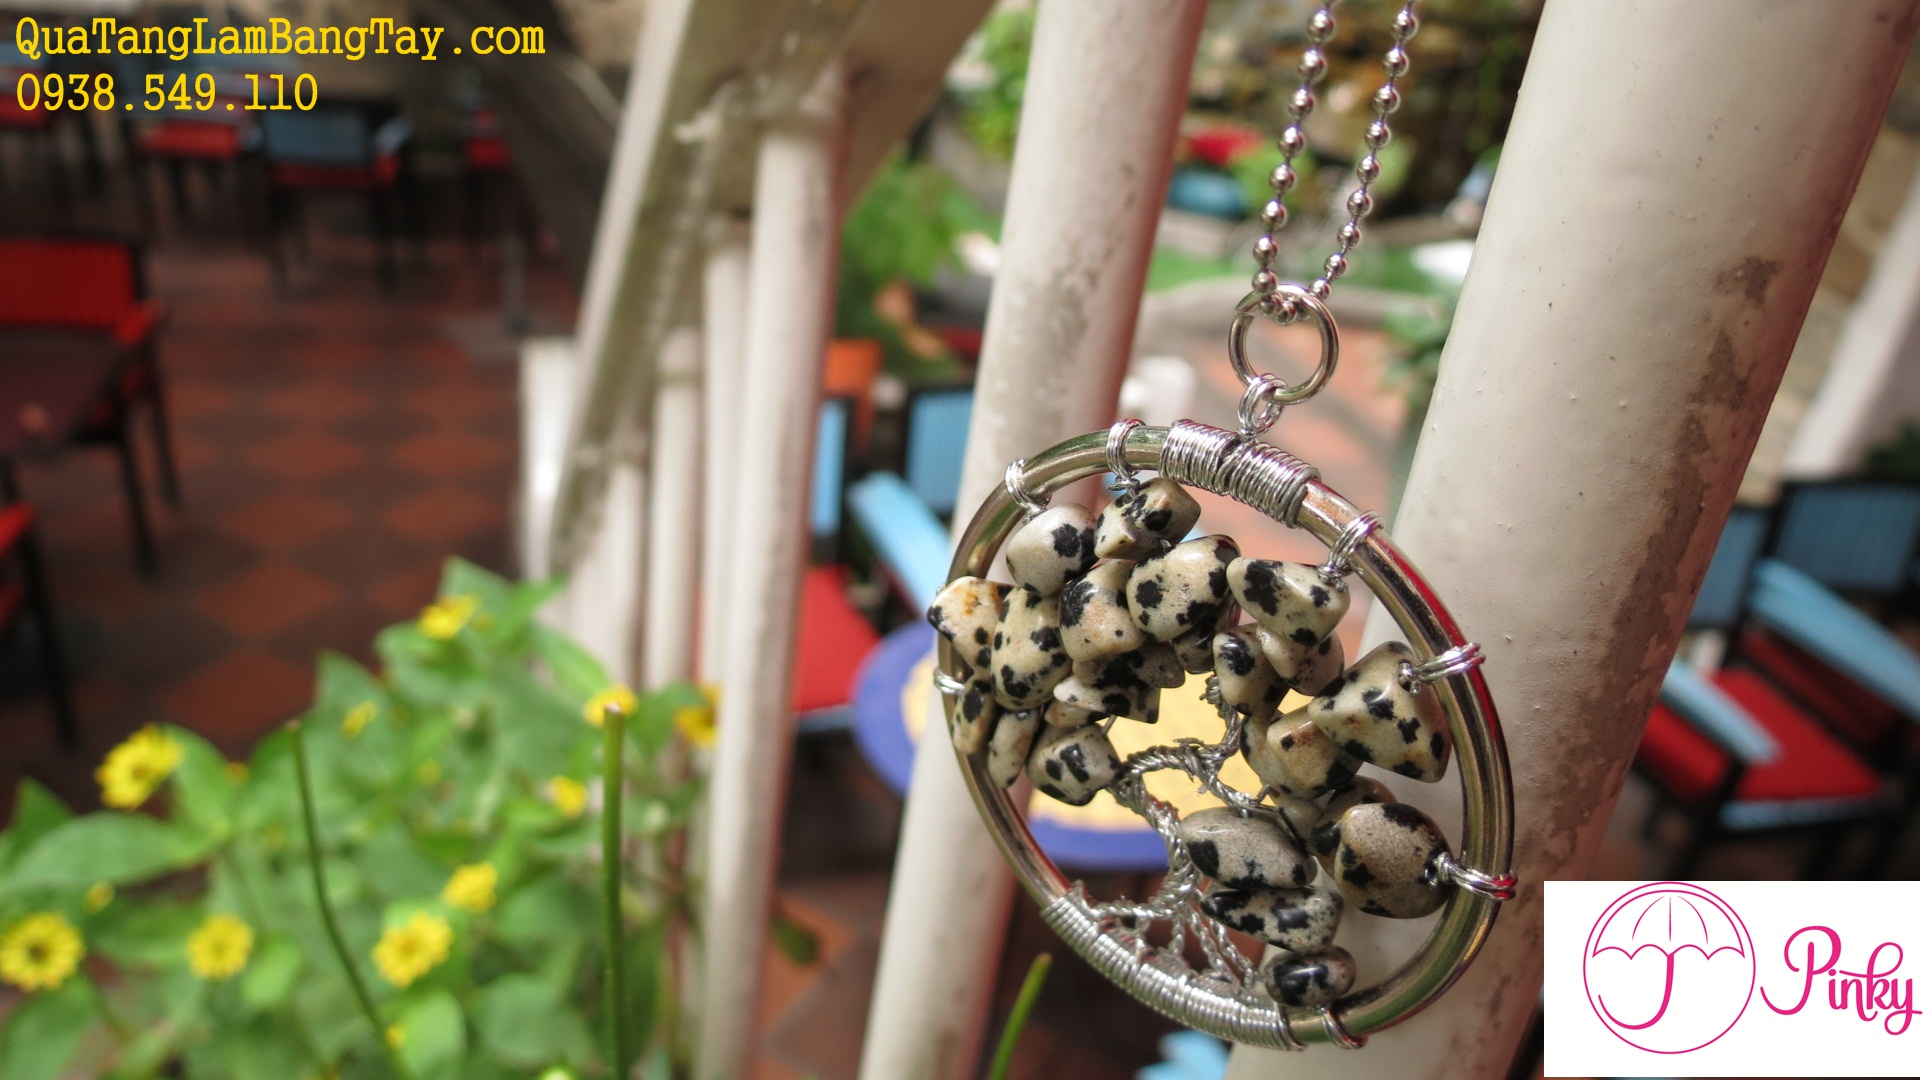 tree of life, tree of life handmade, tree of life giá rẻ